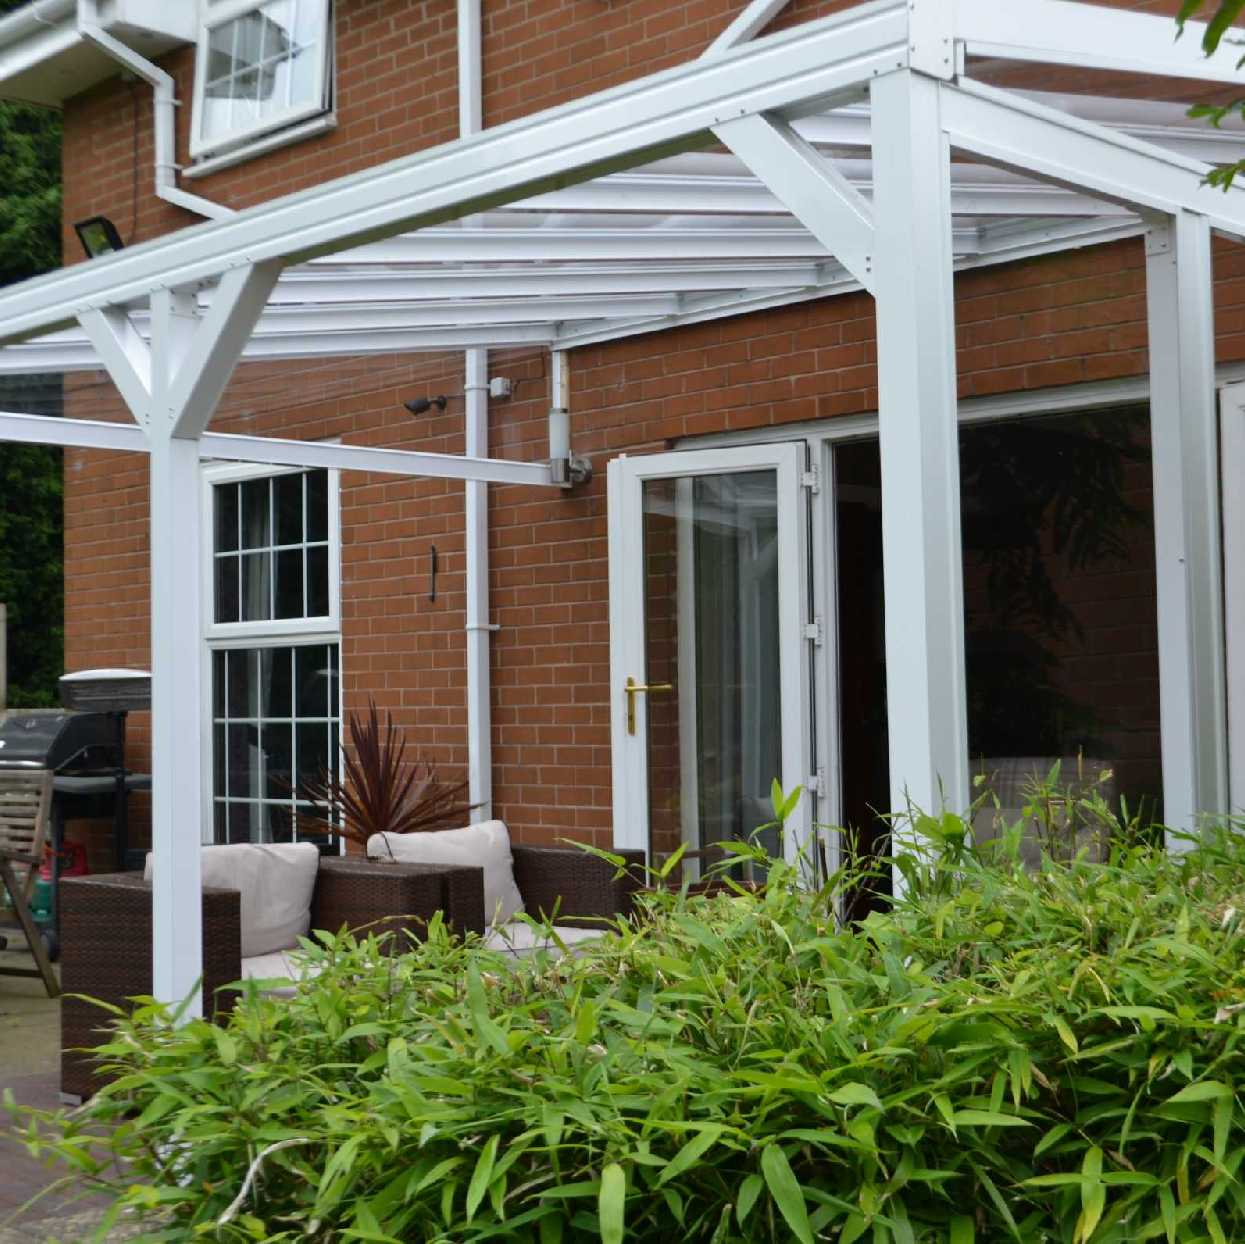 Omega Smart White Lean-To Canopy UNGLAZED for 6mm Glazing - 7.7m (W) x 2.0m (P), (4) Supporting Posts from Omega Build